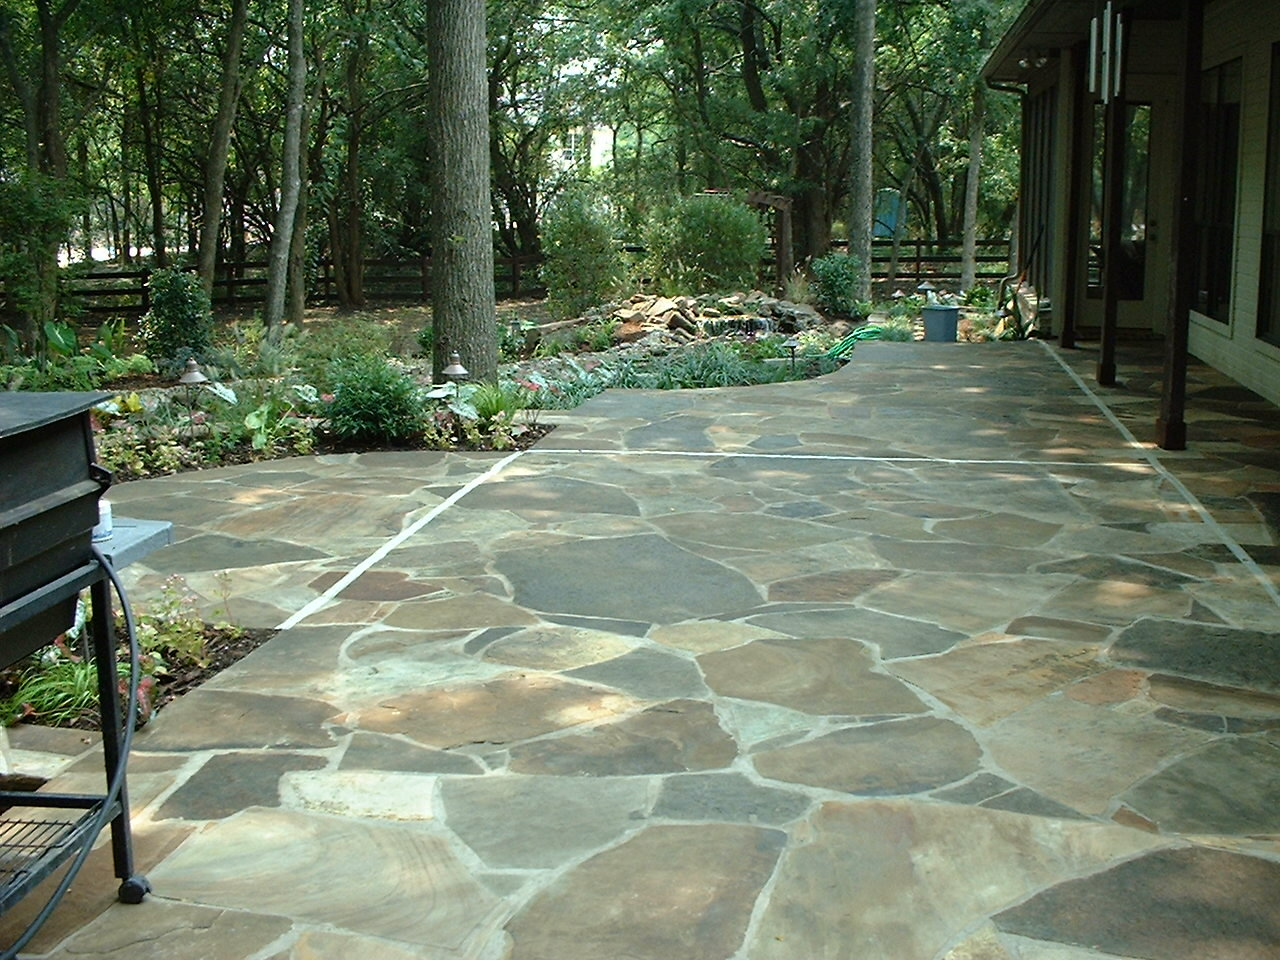 Laying a flagstone patio tips how to build a house having a patio built for you is expensive even if you can find a good professional to do it however if you can do it yourself and you dont have to pay solutioingenieria Images